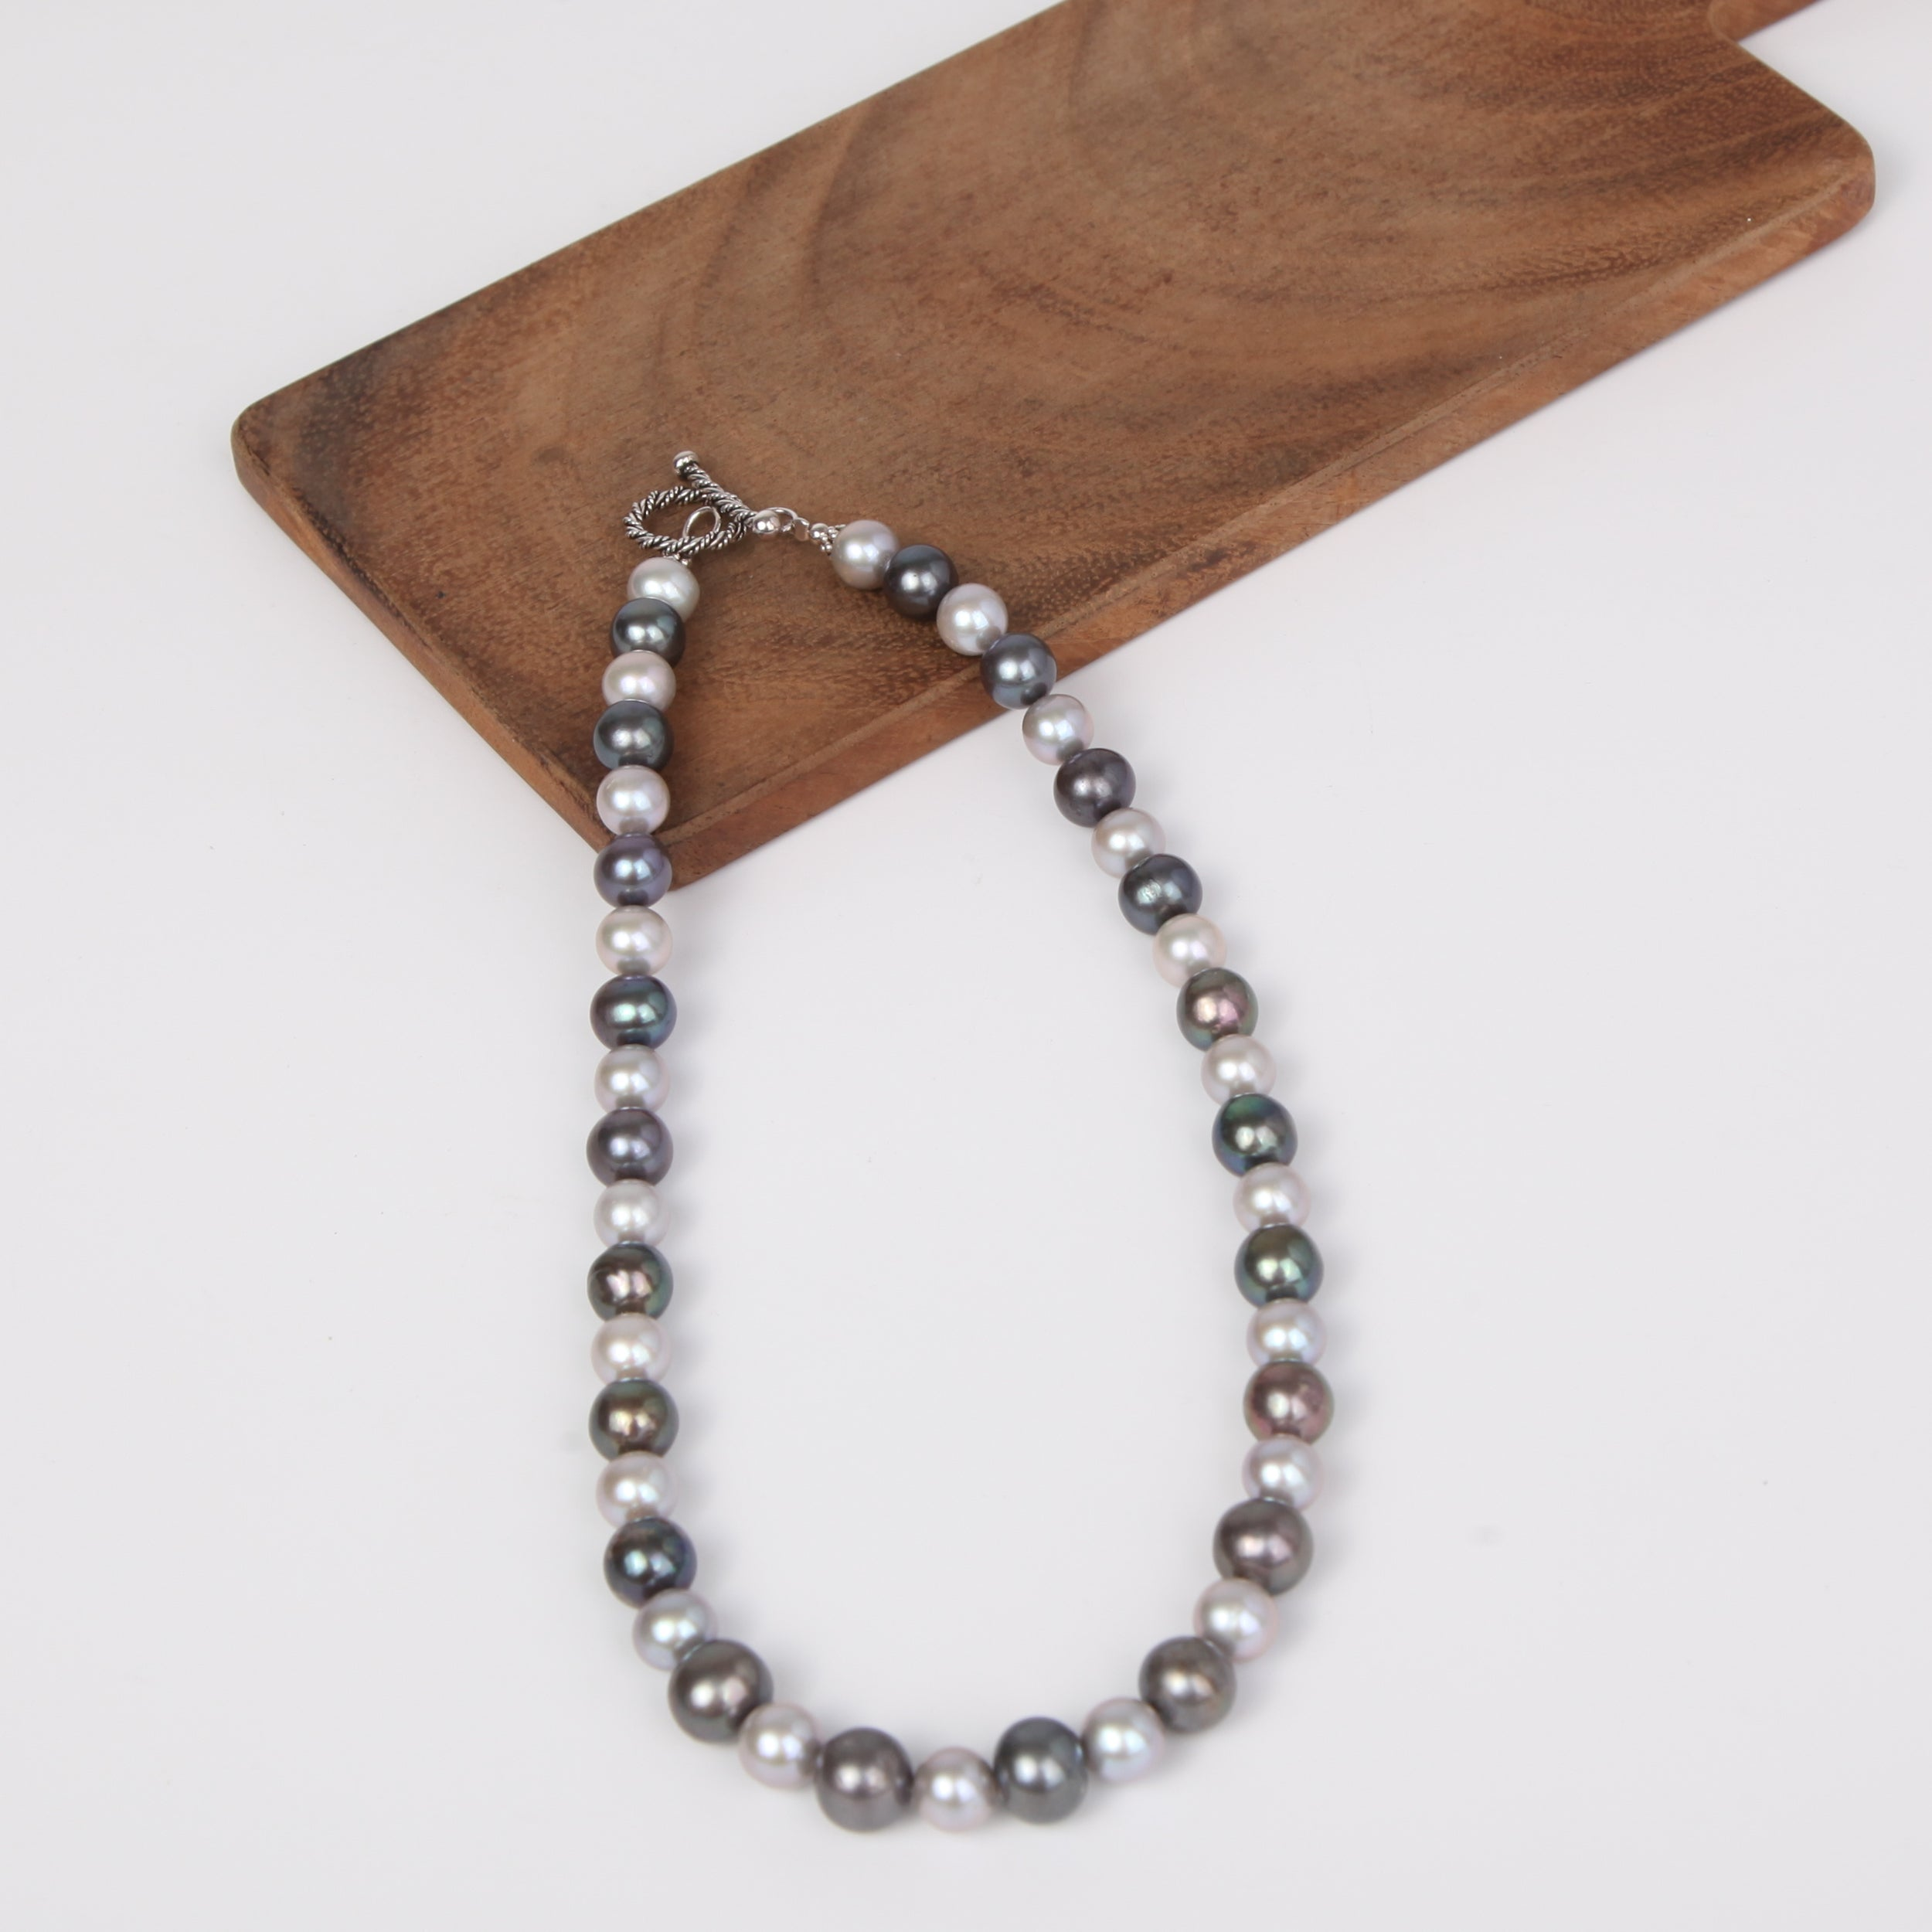 Dark Two Tone Fresh Water Pearl Necklace with Sterling Silver